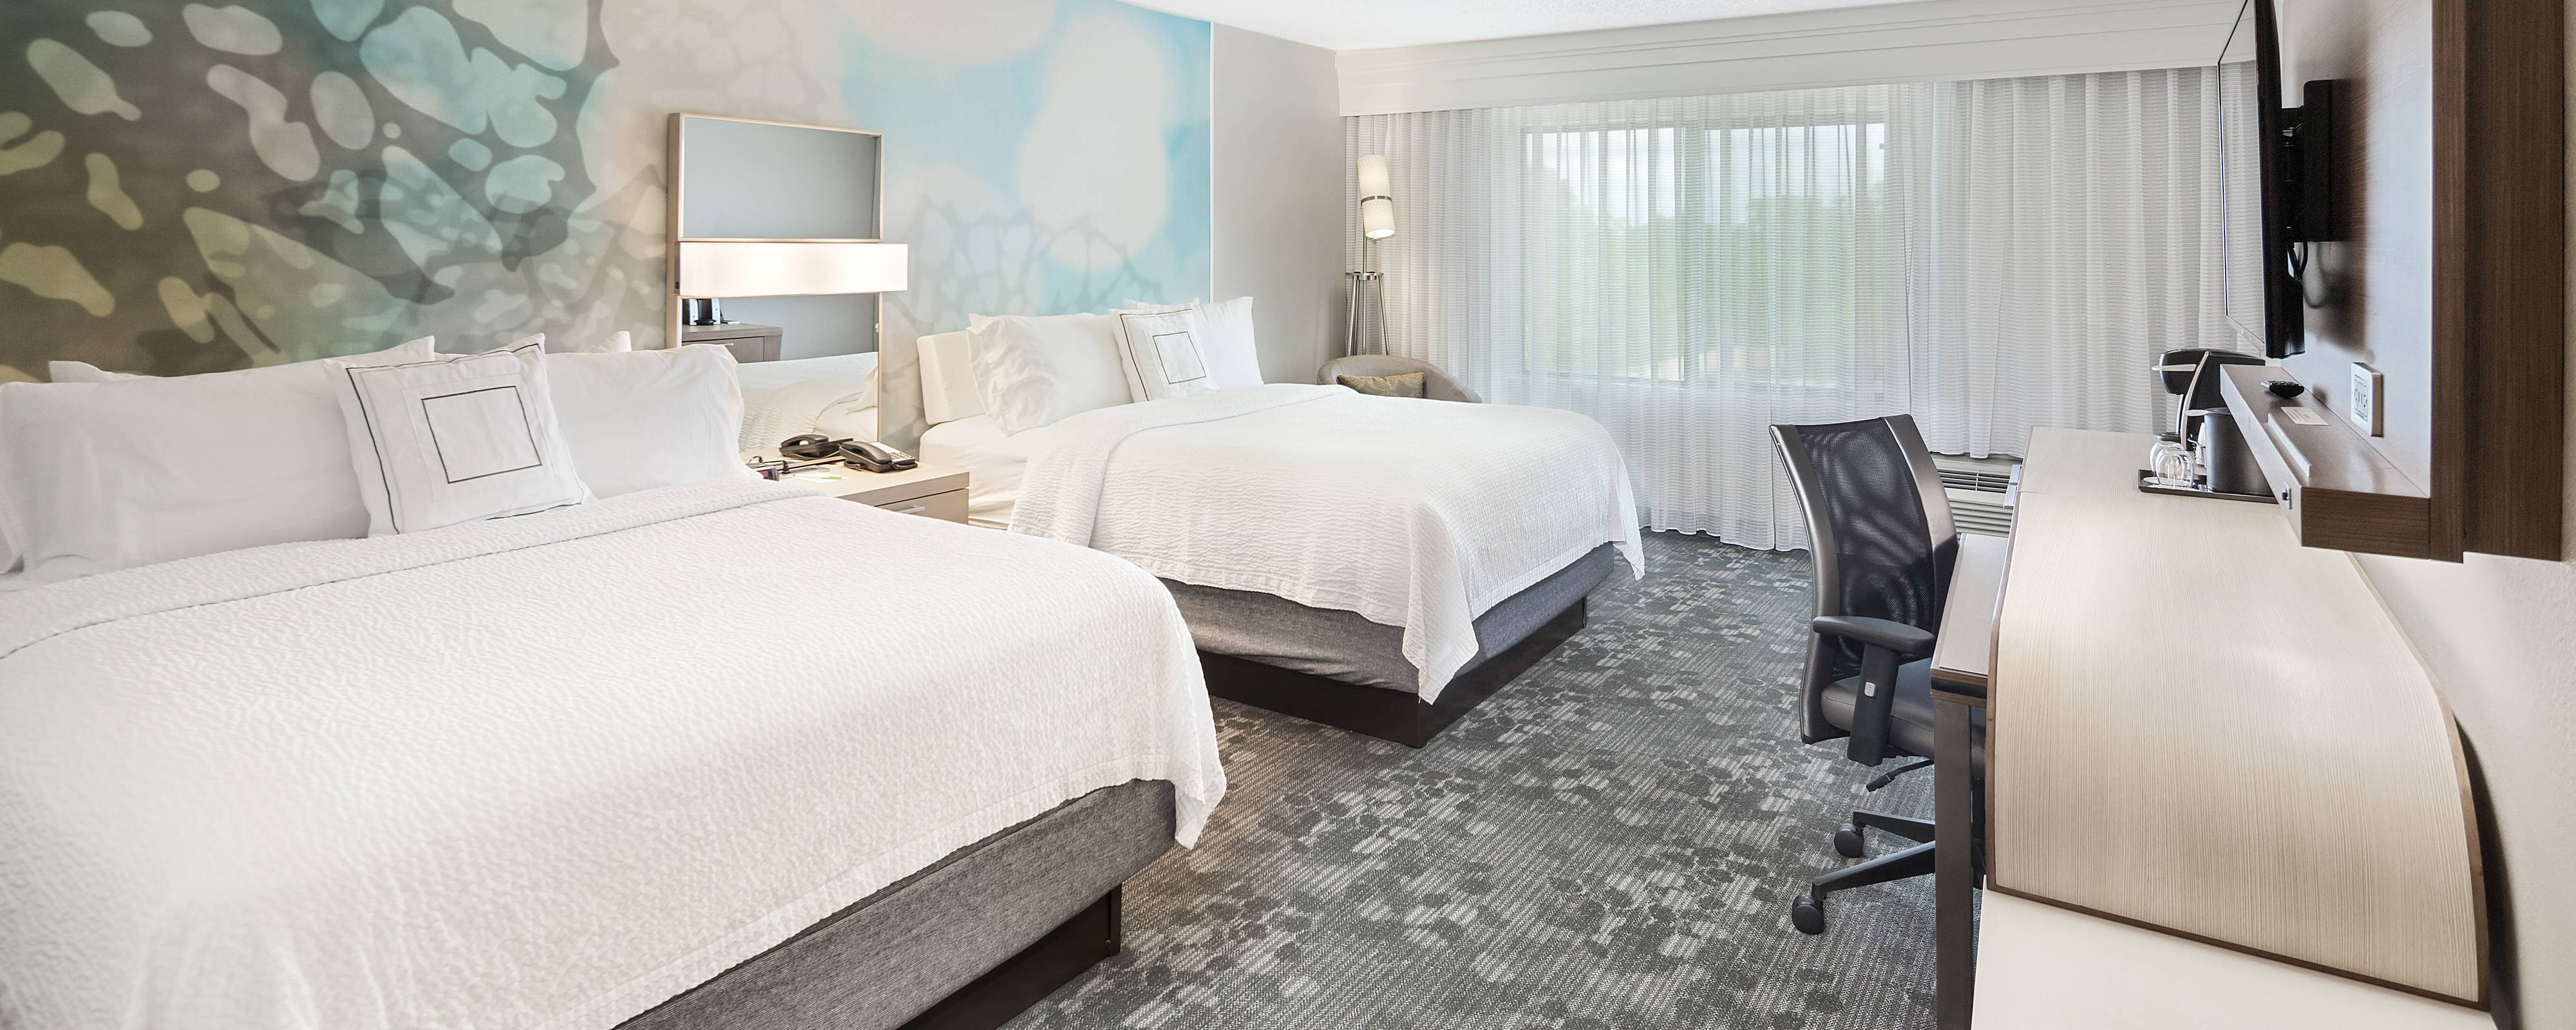 Hotel Rooms In Bryan College Station